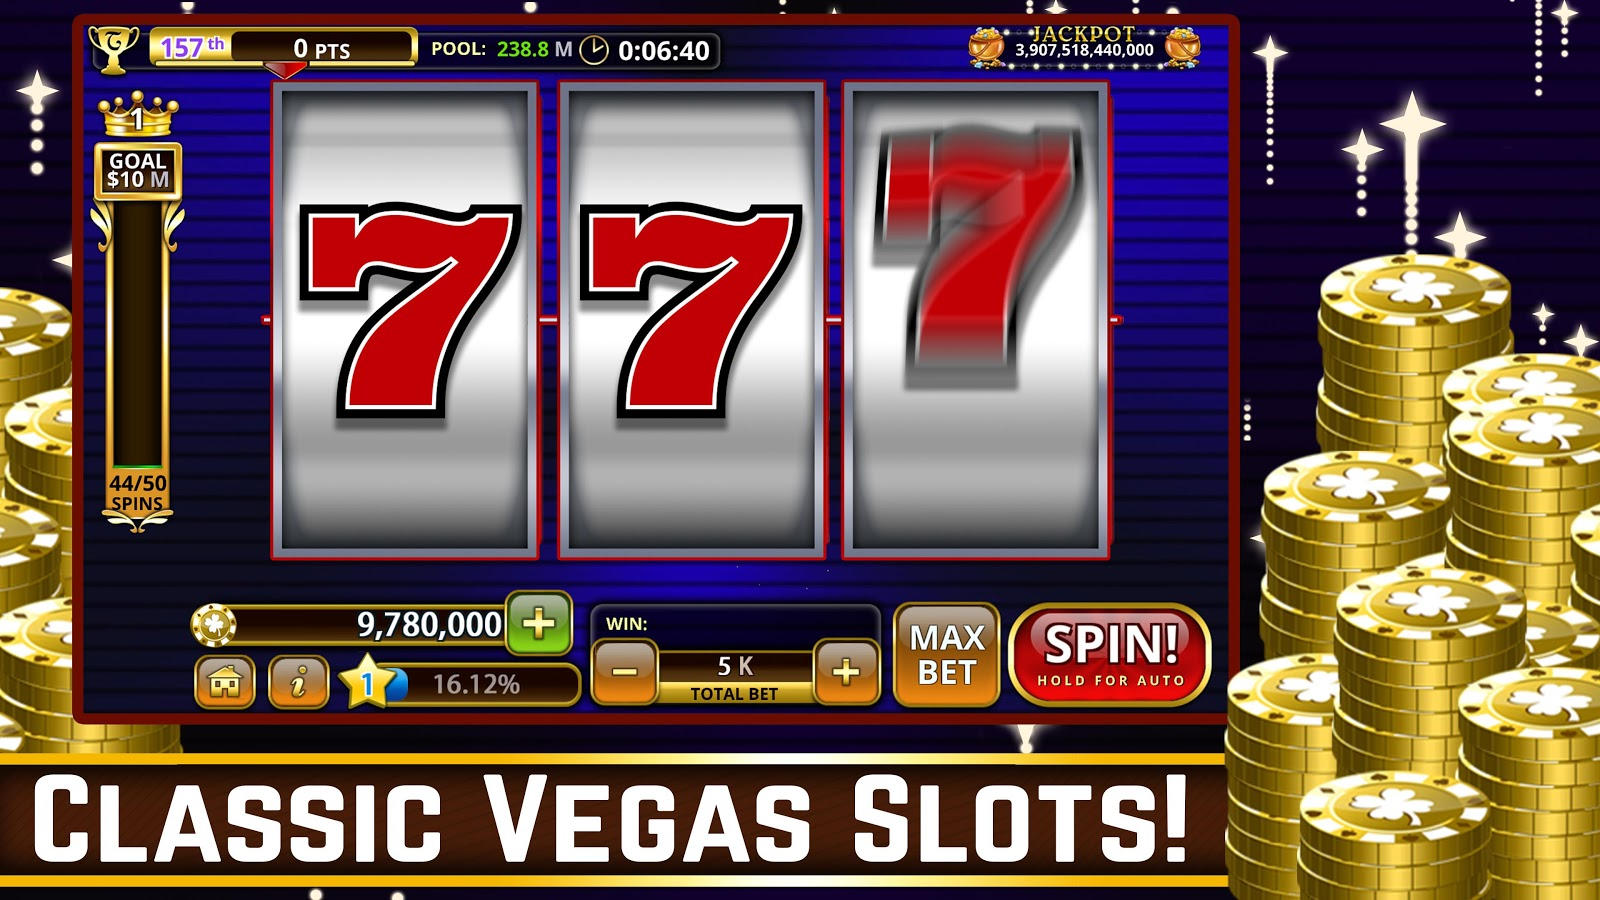 20 Super Hot Slot Machine - Try Playing Online for Free